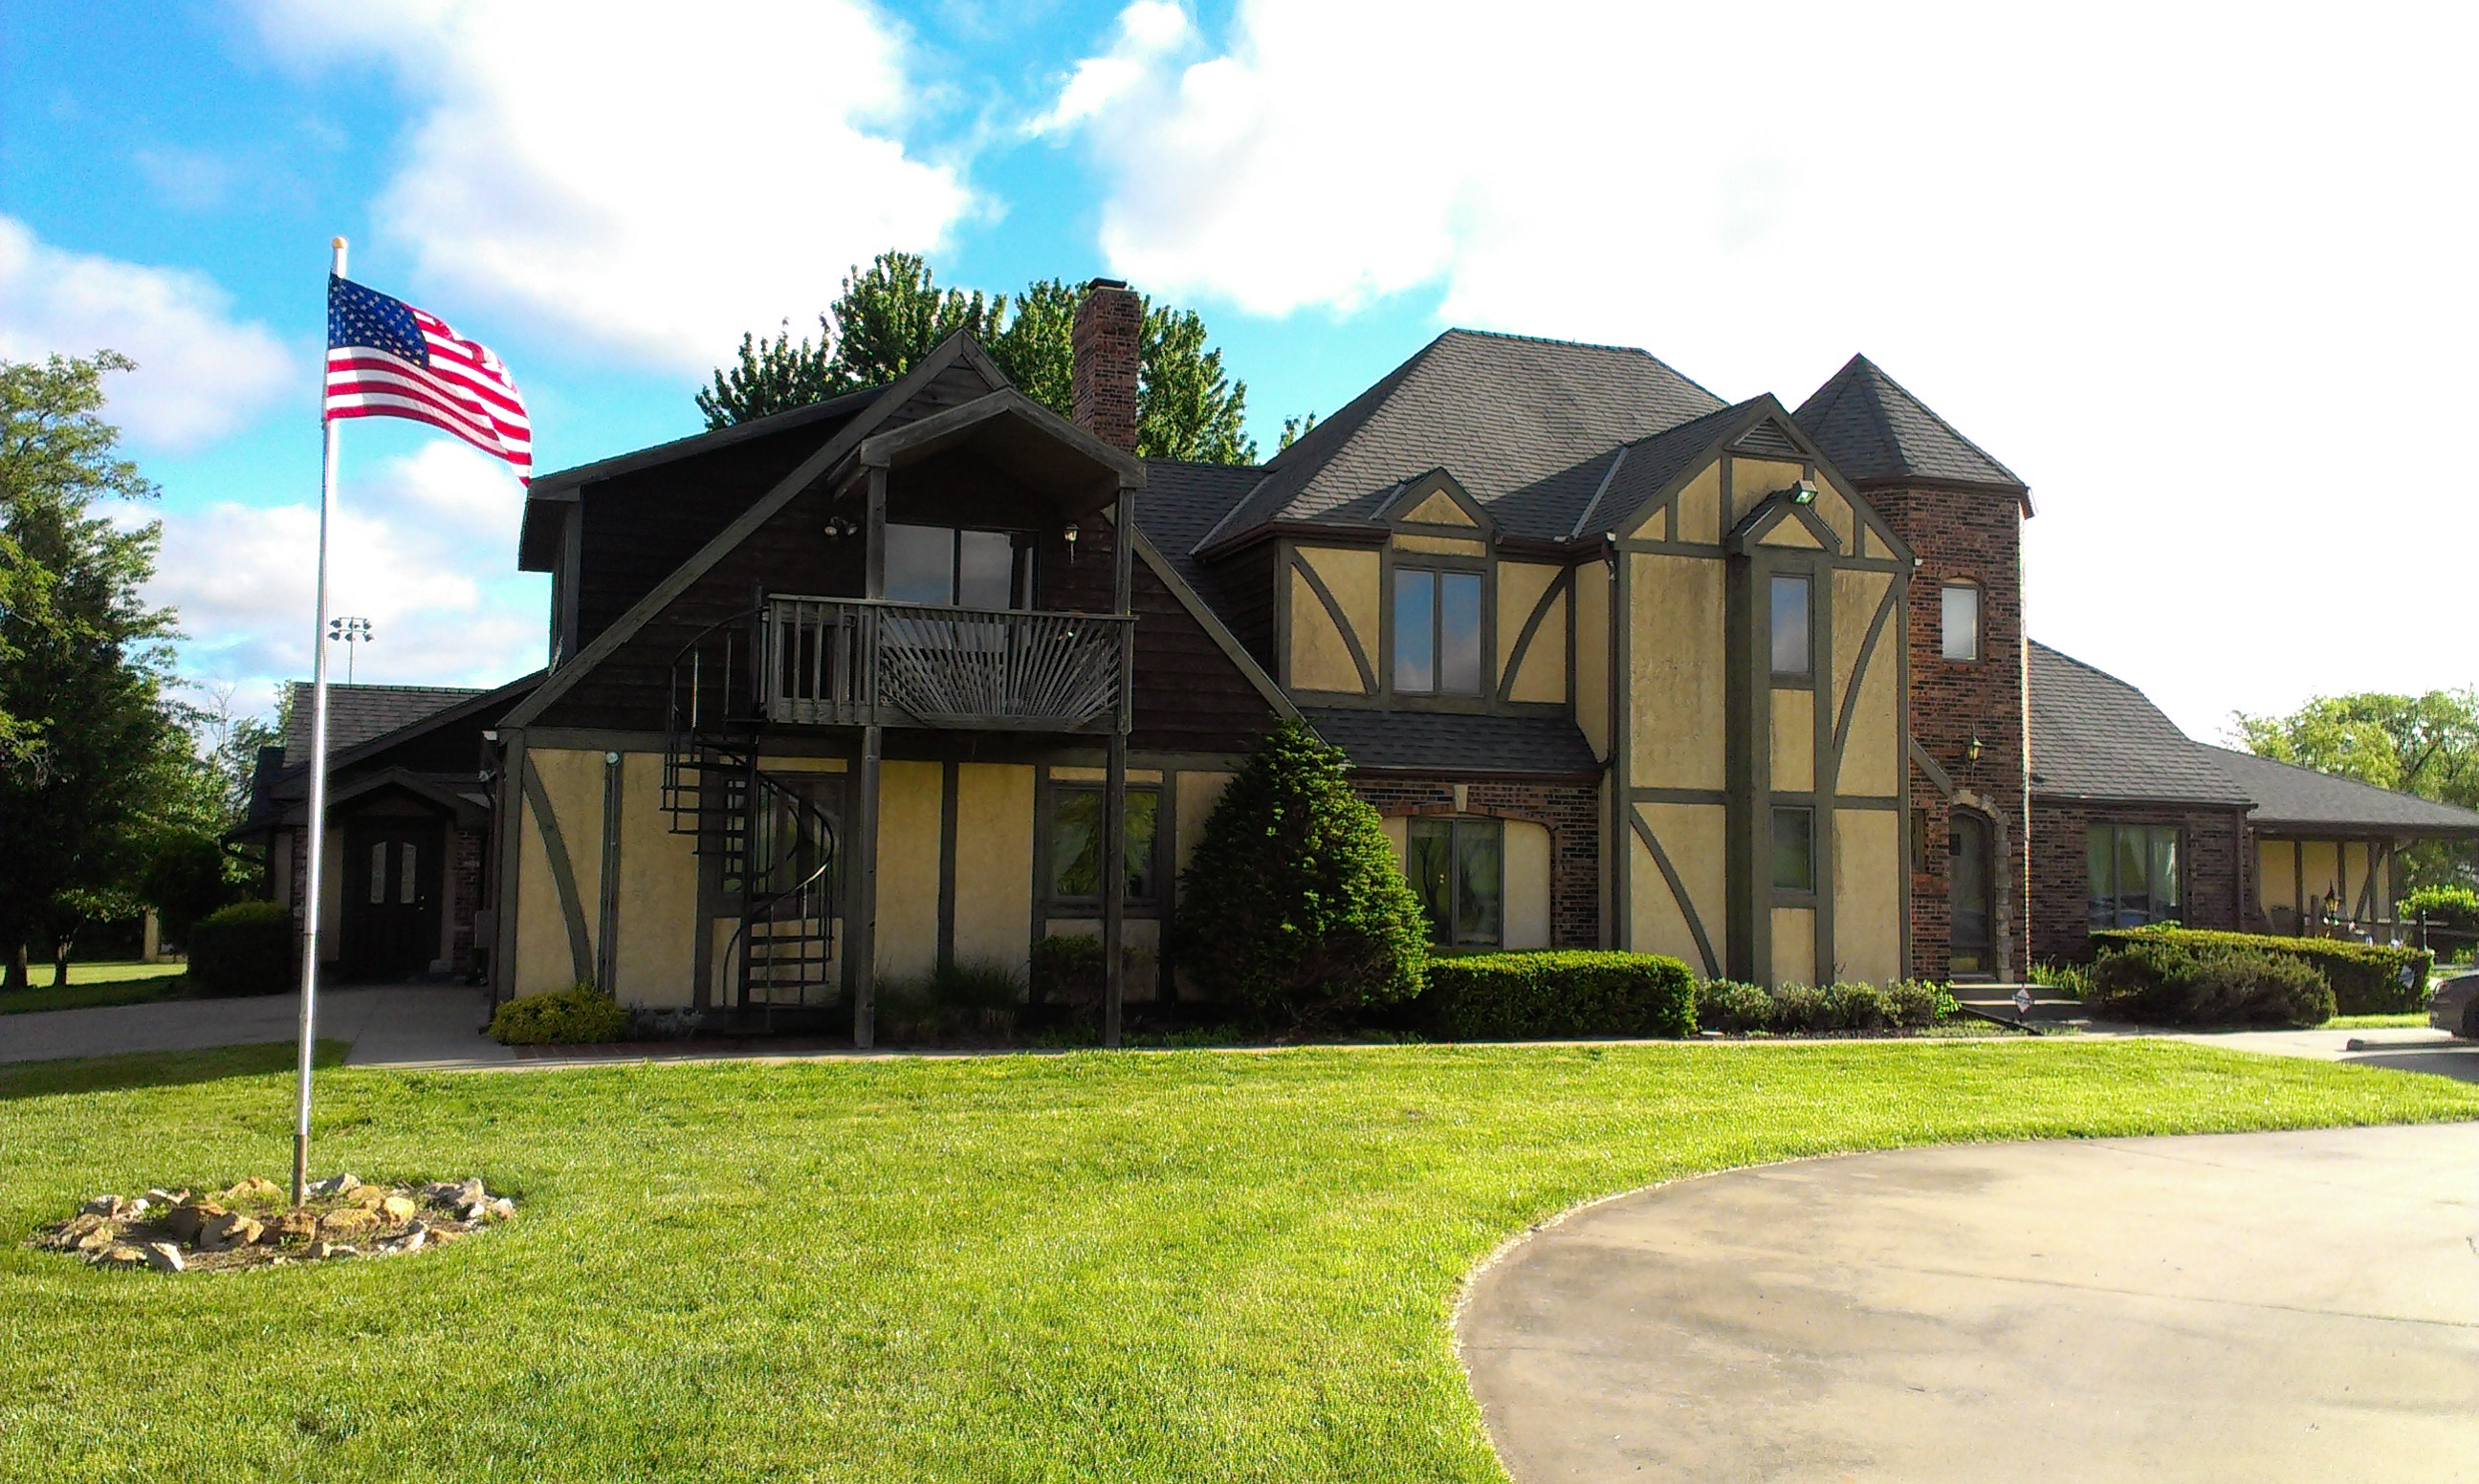 Midland Care at Linnwood Park is a historic home situated on beautiful Kansas prairie in Valley Falls, Kansas.